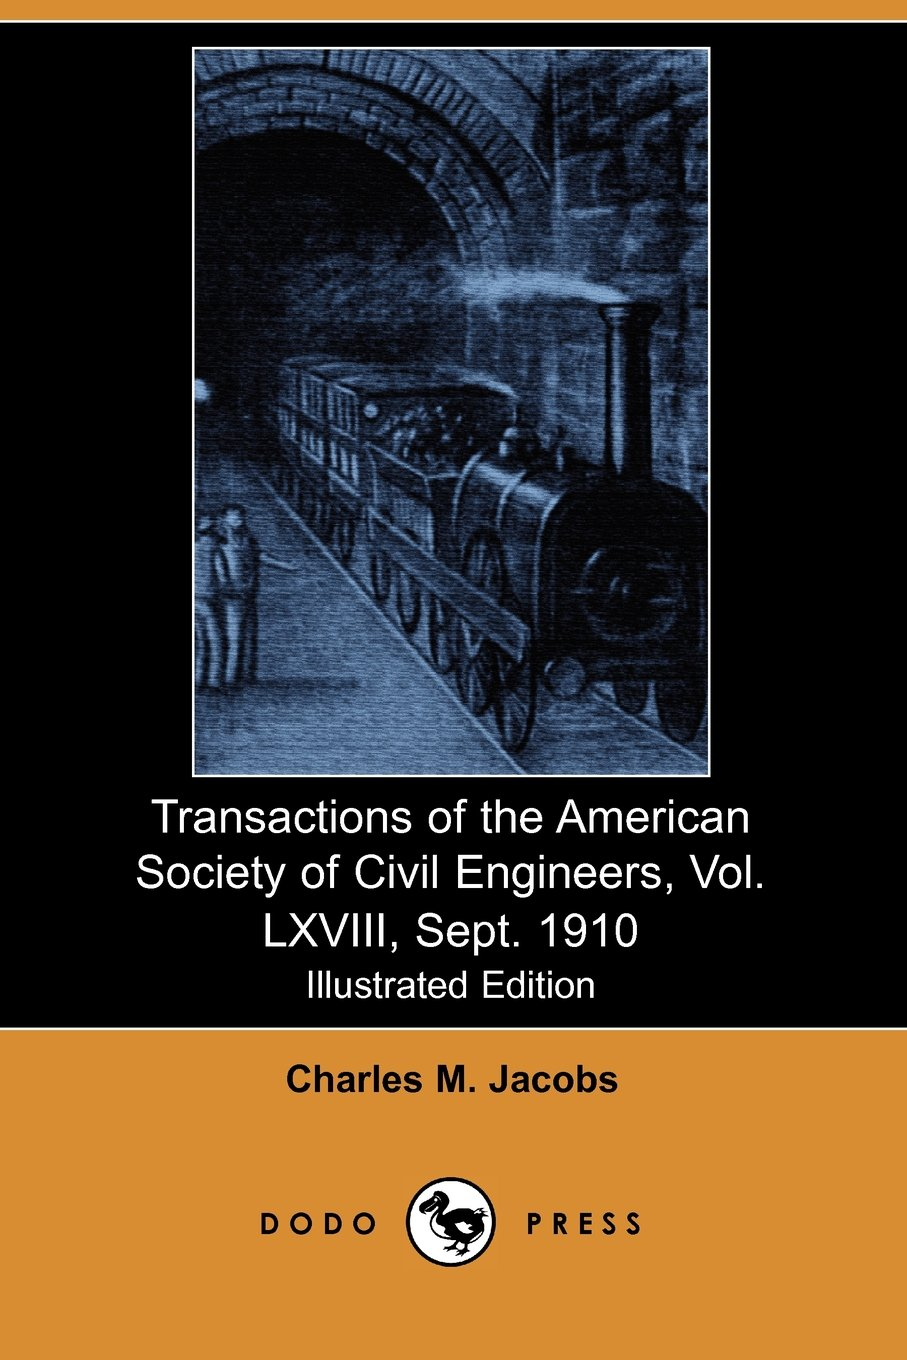 Read Online Transactions of the American Society of Civil Engineers, vol. Lxviii, Sept. 1910 (Illustrated Edition): Written For The American Institute Of Civil ... The Long Island Railroad Into New York City. pdf epub